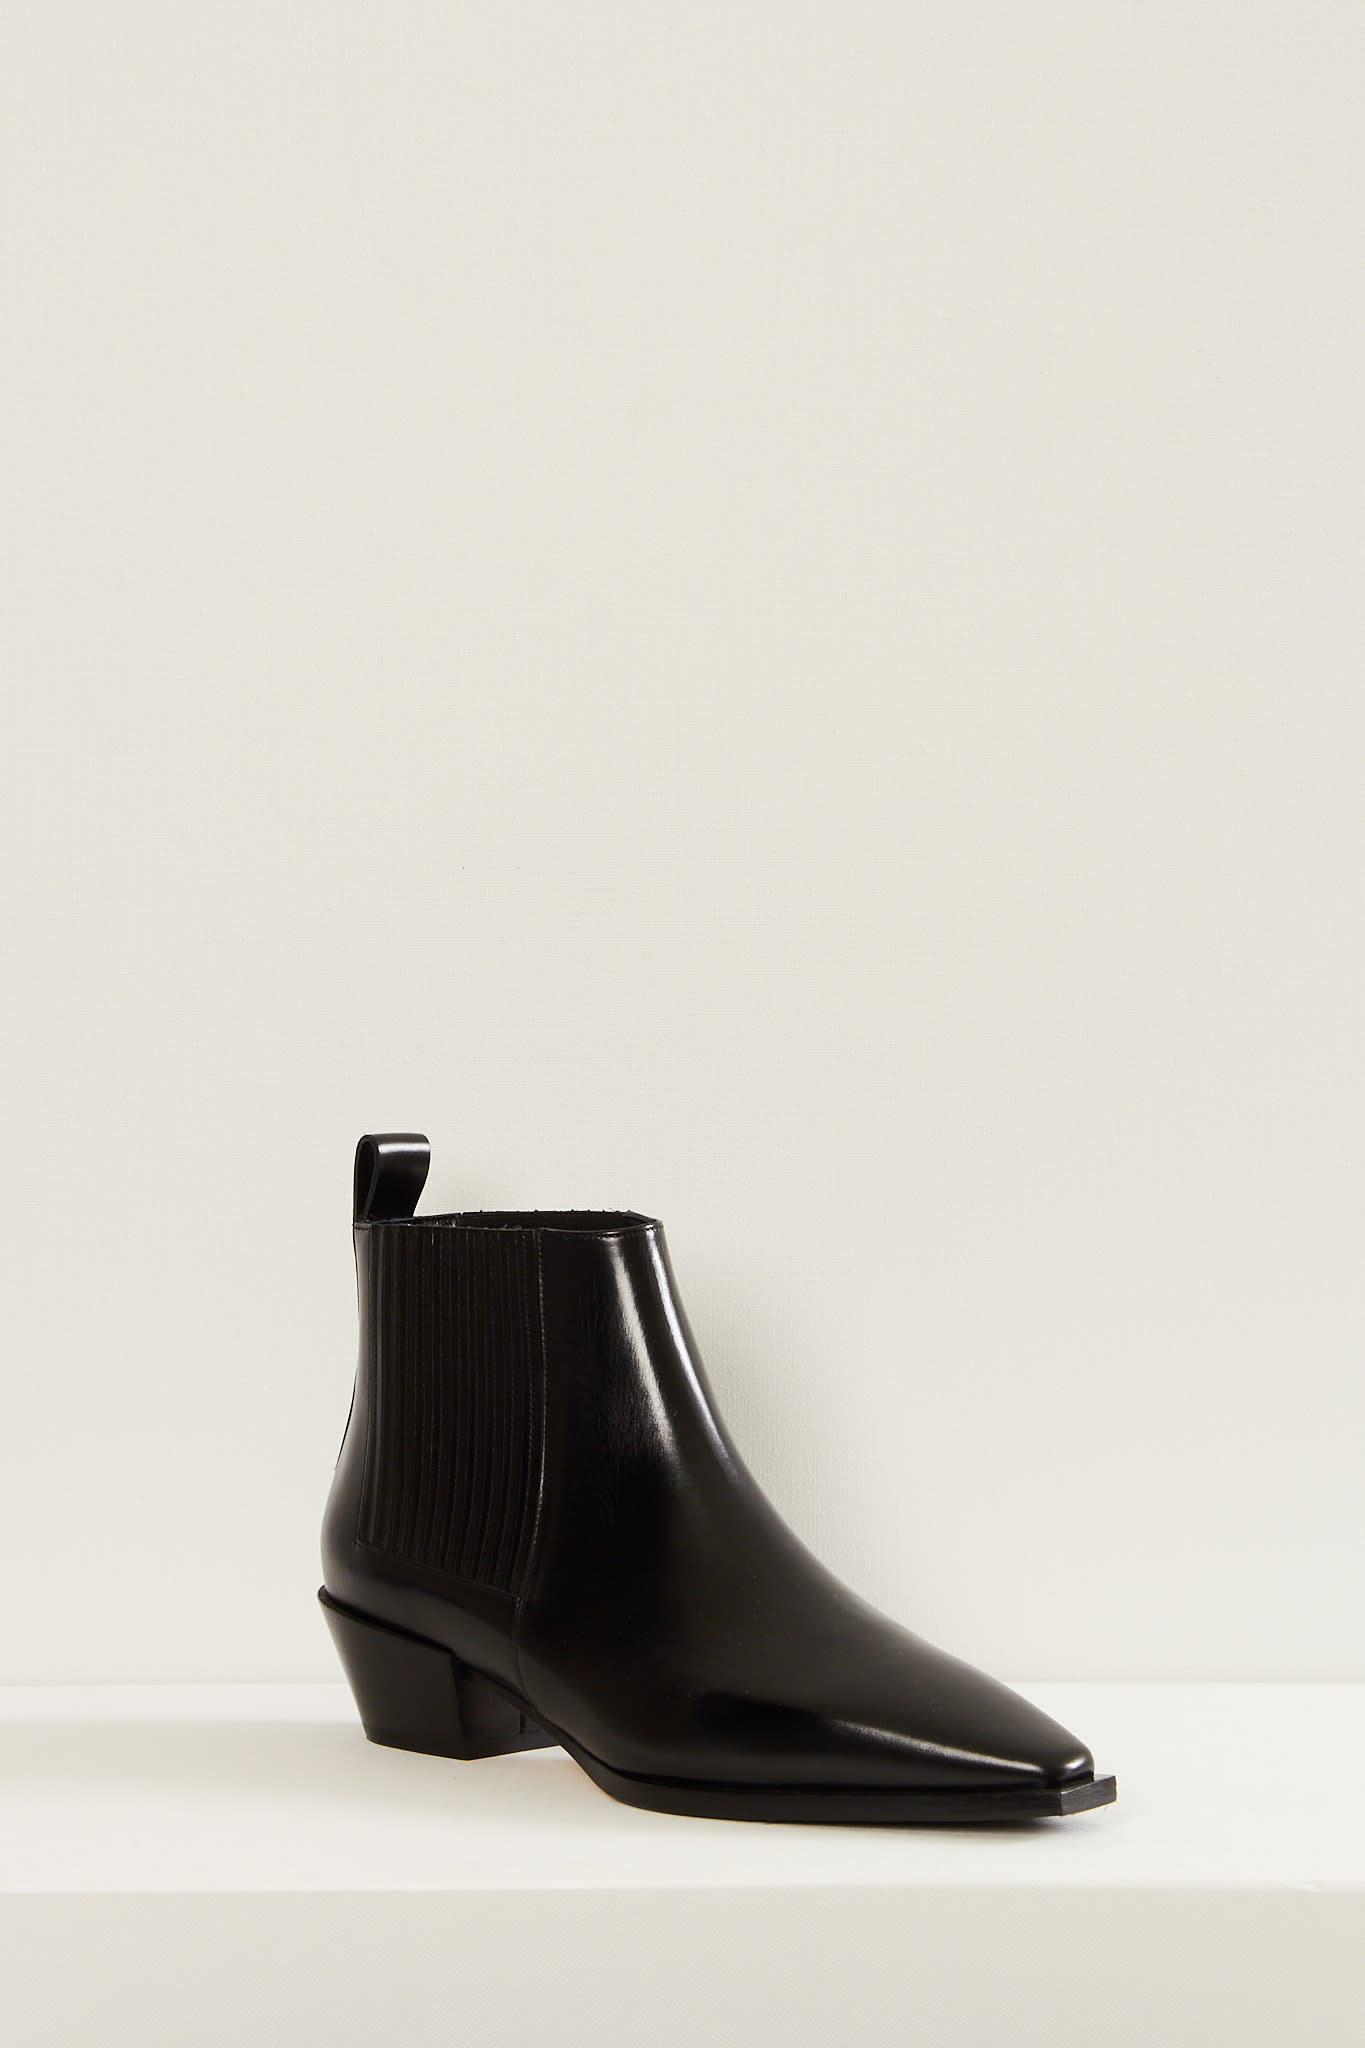 Aeyde Bea calf leather boots